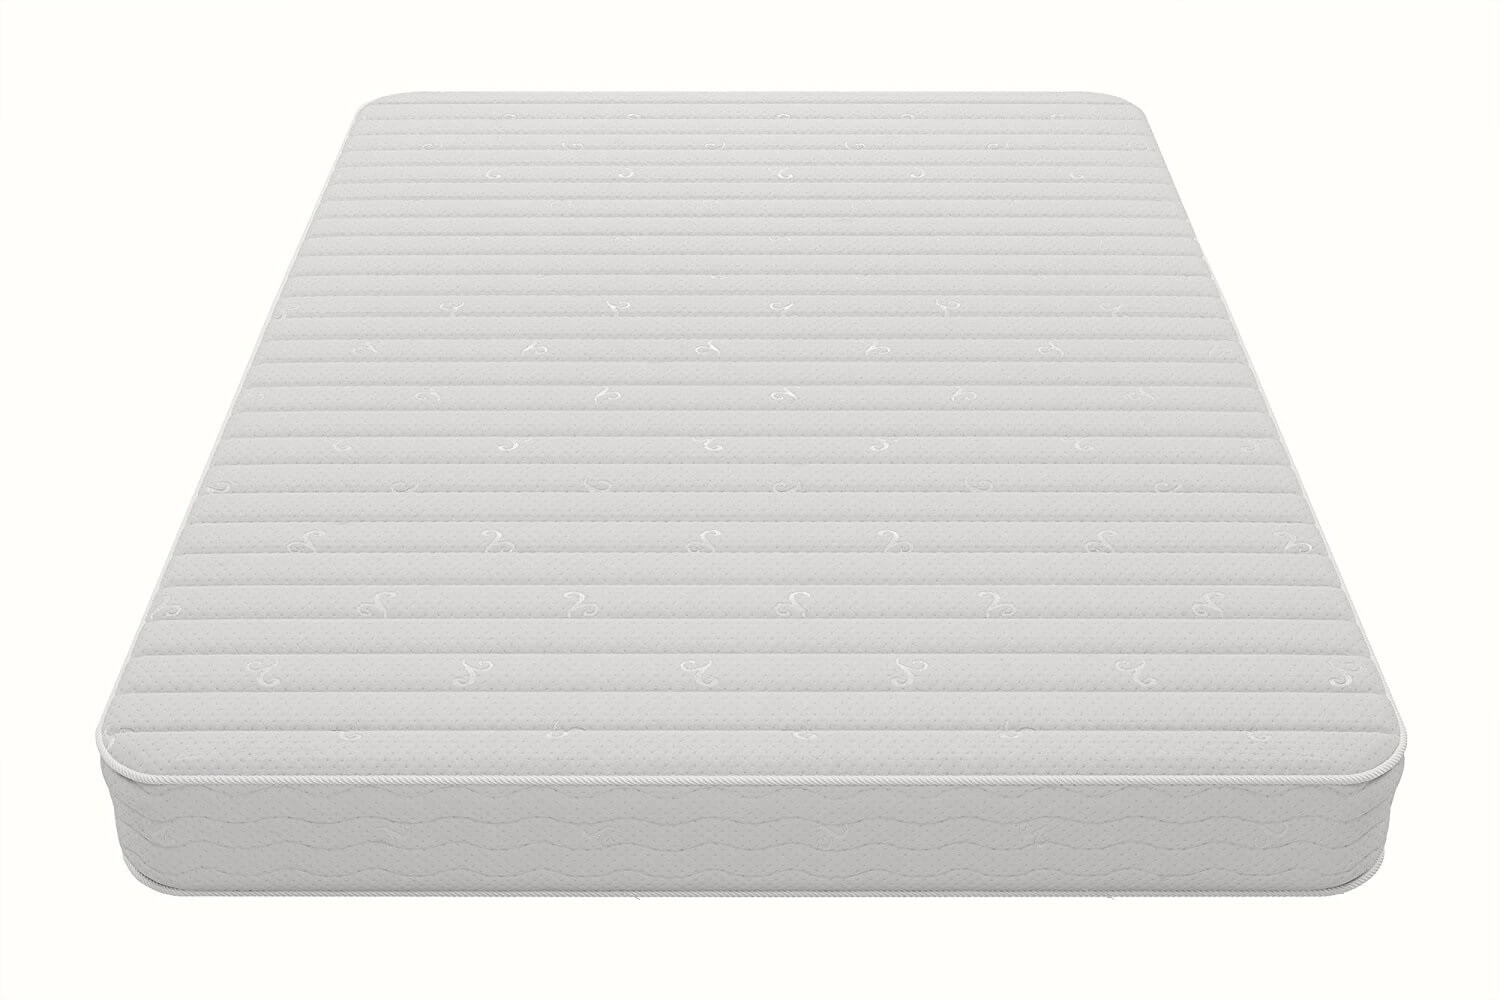 the mattress buy mattresses twin review signature best in to sleep